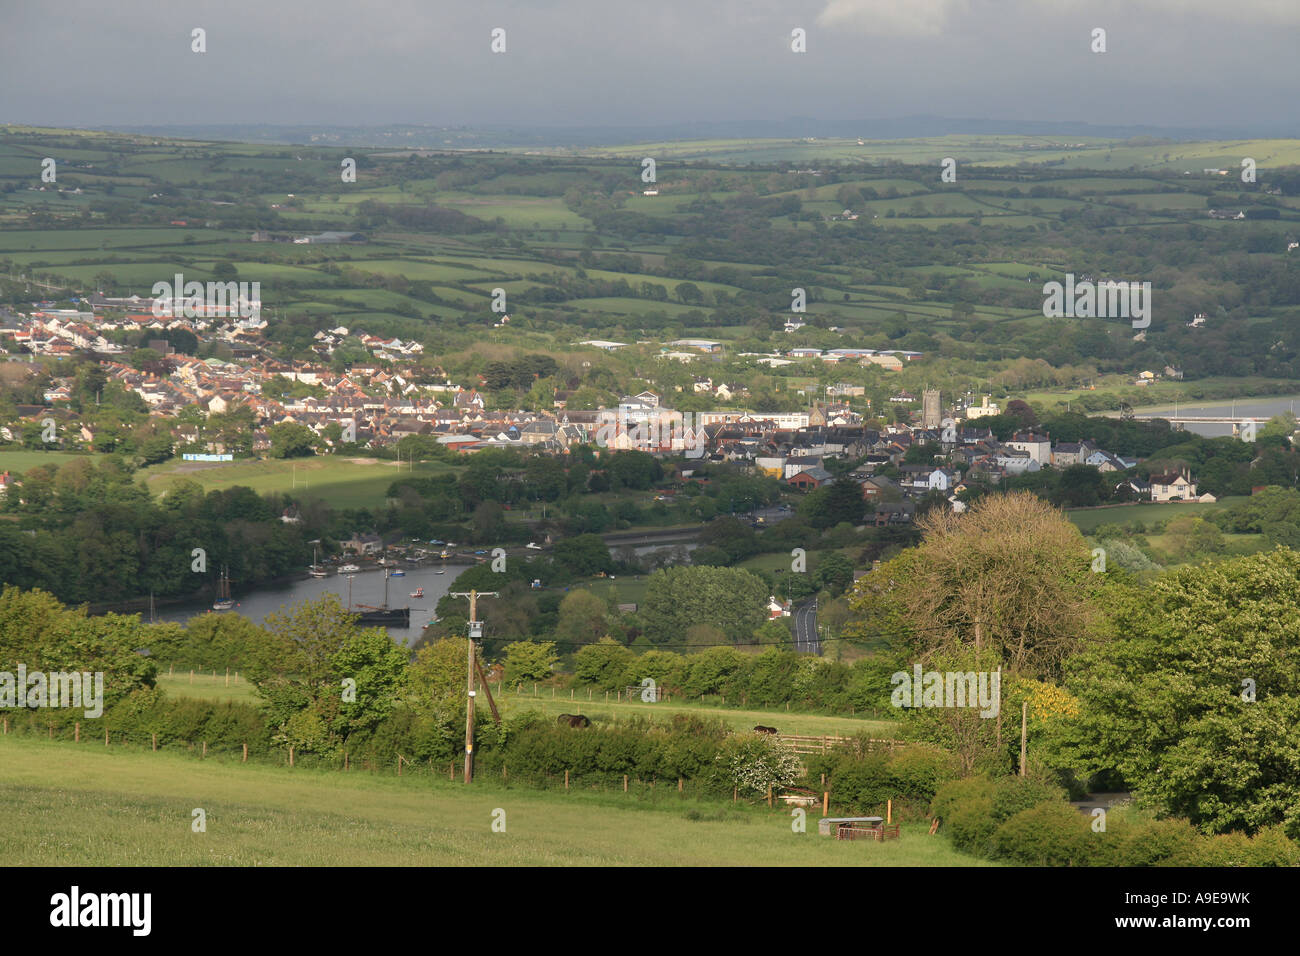 Cardigan, nestling in the Tefi Valley, Wales - Stock Image